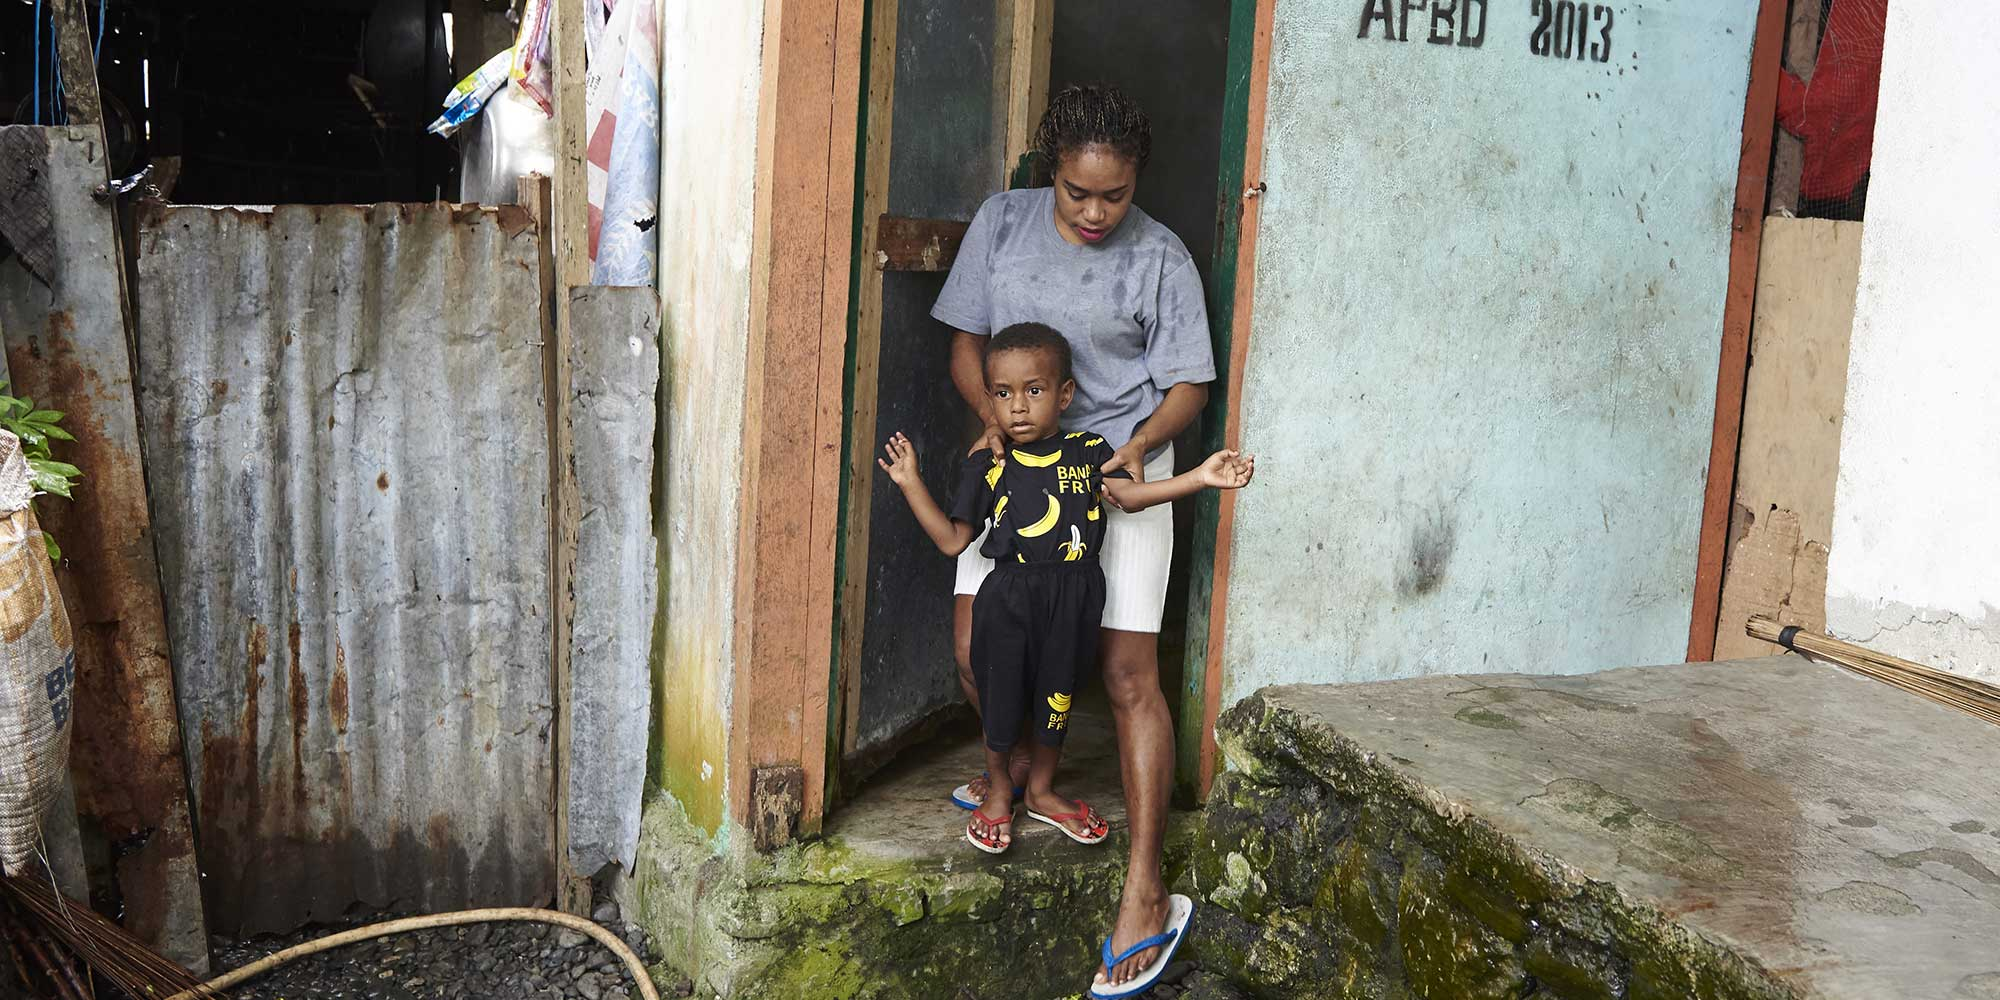 Aumelina helps her child in using the family latrine outside their home in Tablanusu, a 100 per cent Open Defecation Free (ODF) village in Papua Province, Indonesia. – Photo: UNICEF/UN0248720/Noorani